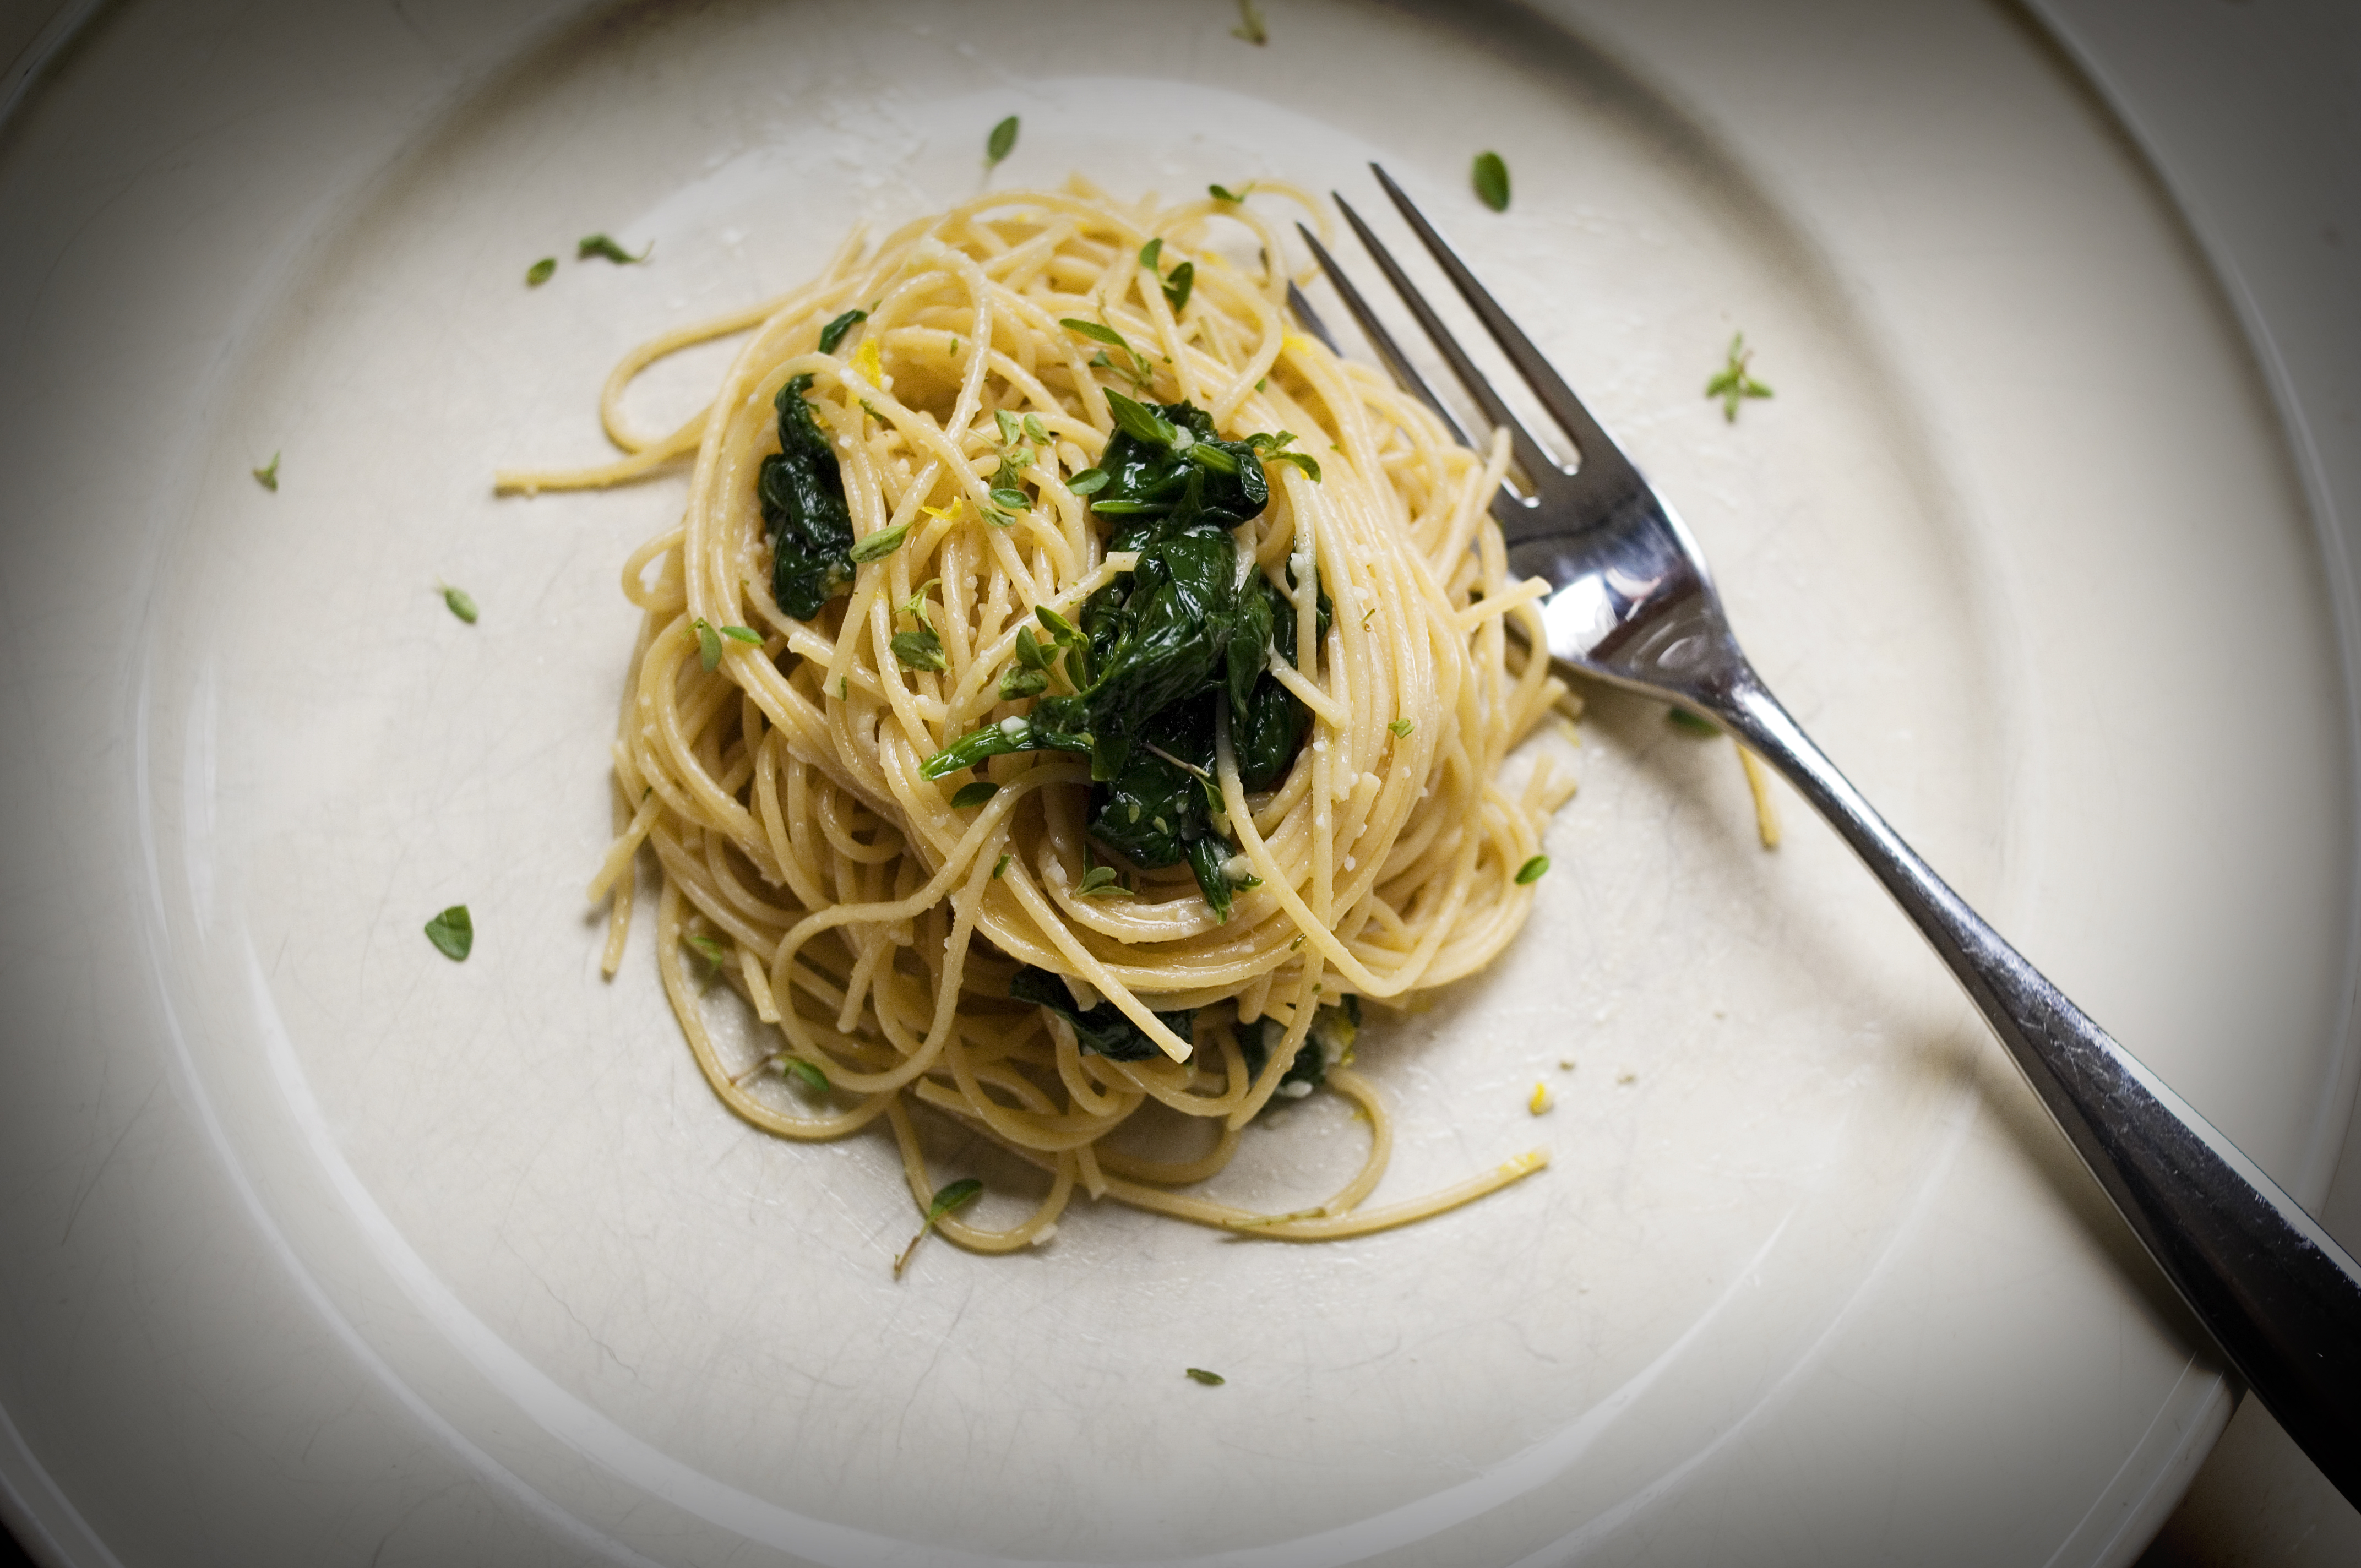 Garlic Butter Pasta with Spinach, Lemon and Parmesan